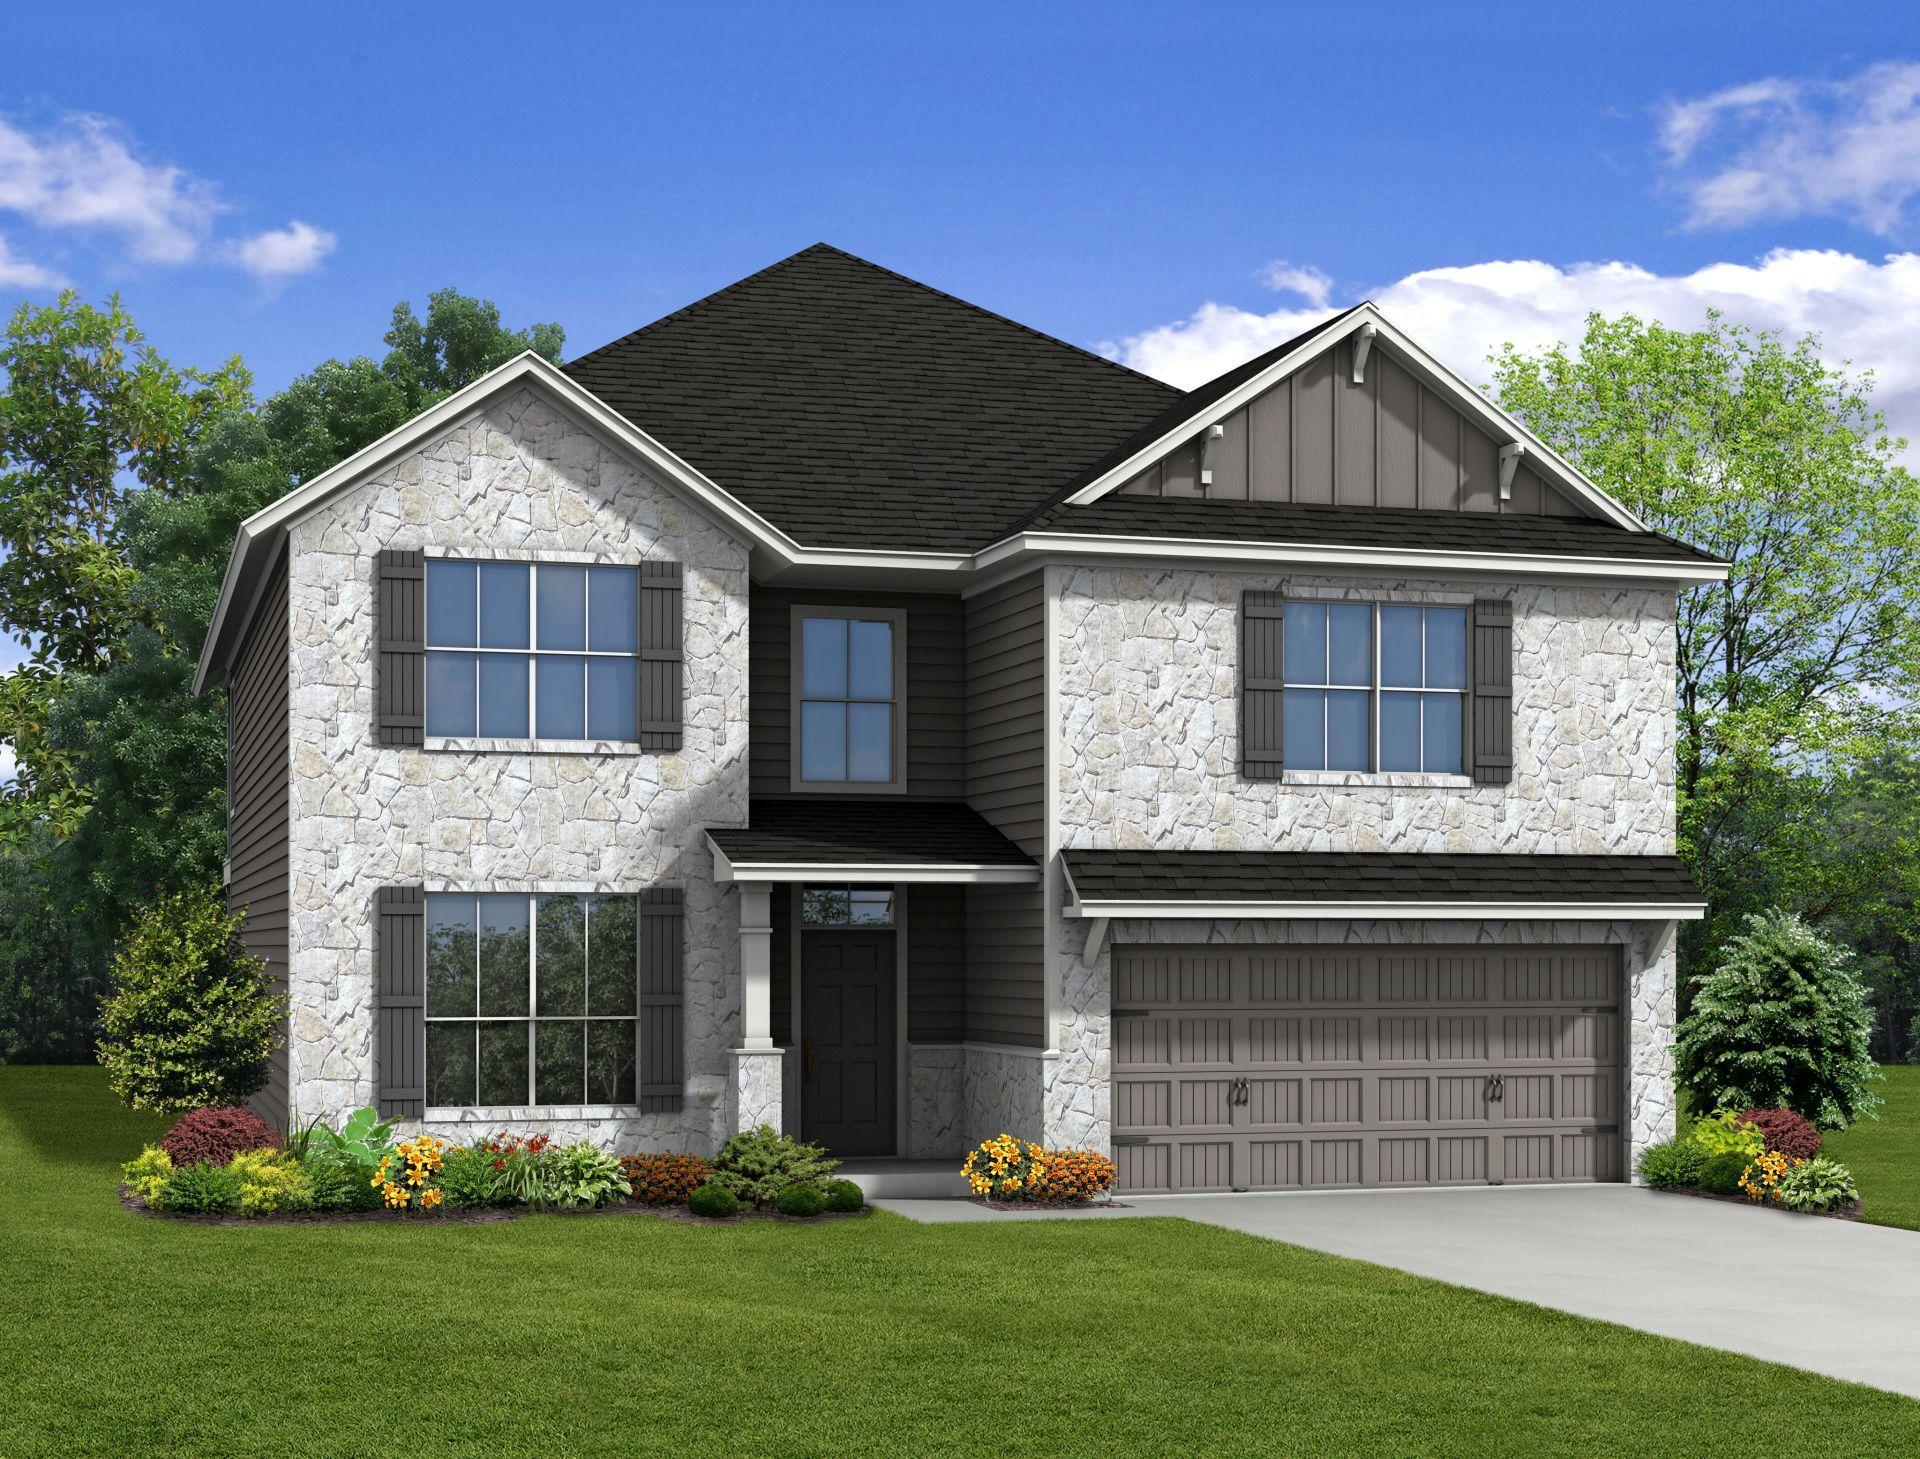 3232 plan killeen texas 76542 3232 plan at yowell for New construction ranch style homes in illinois